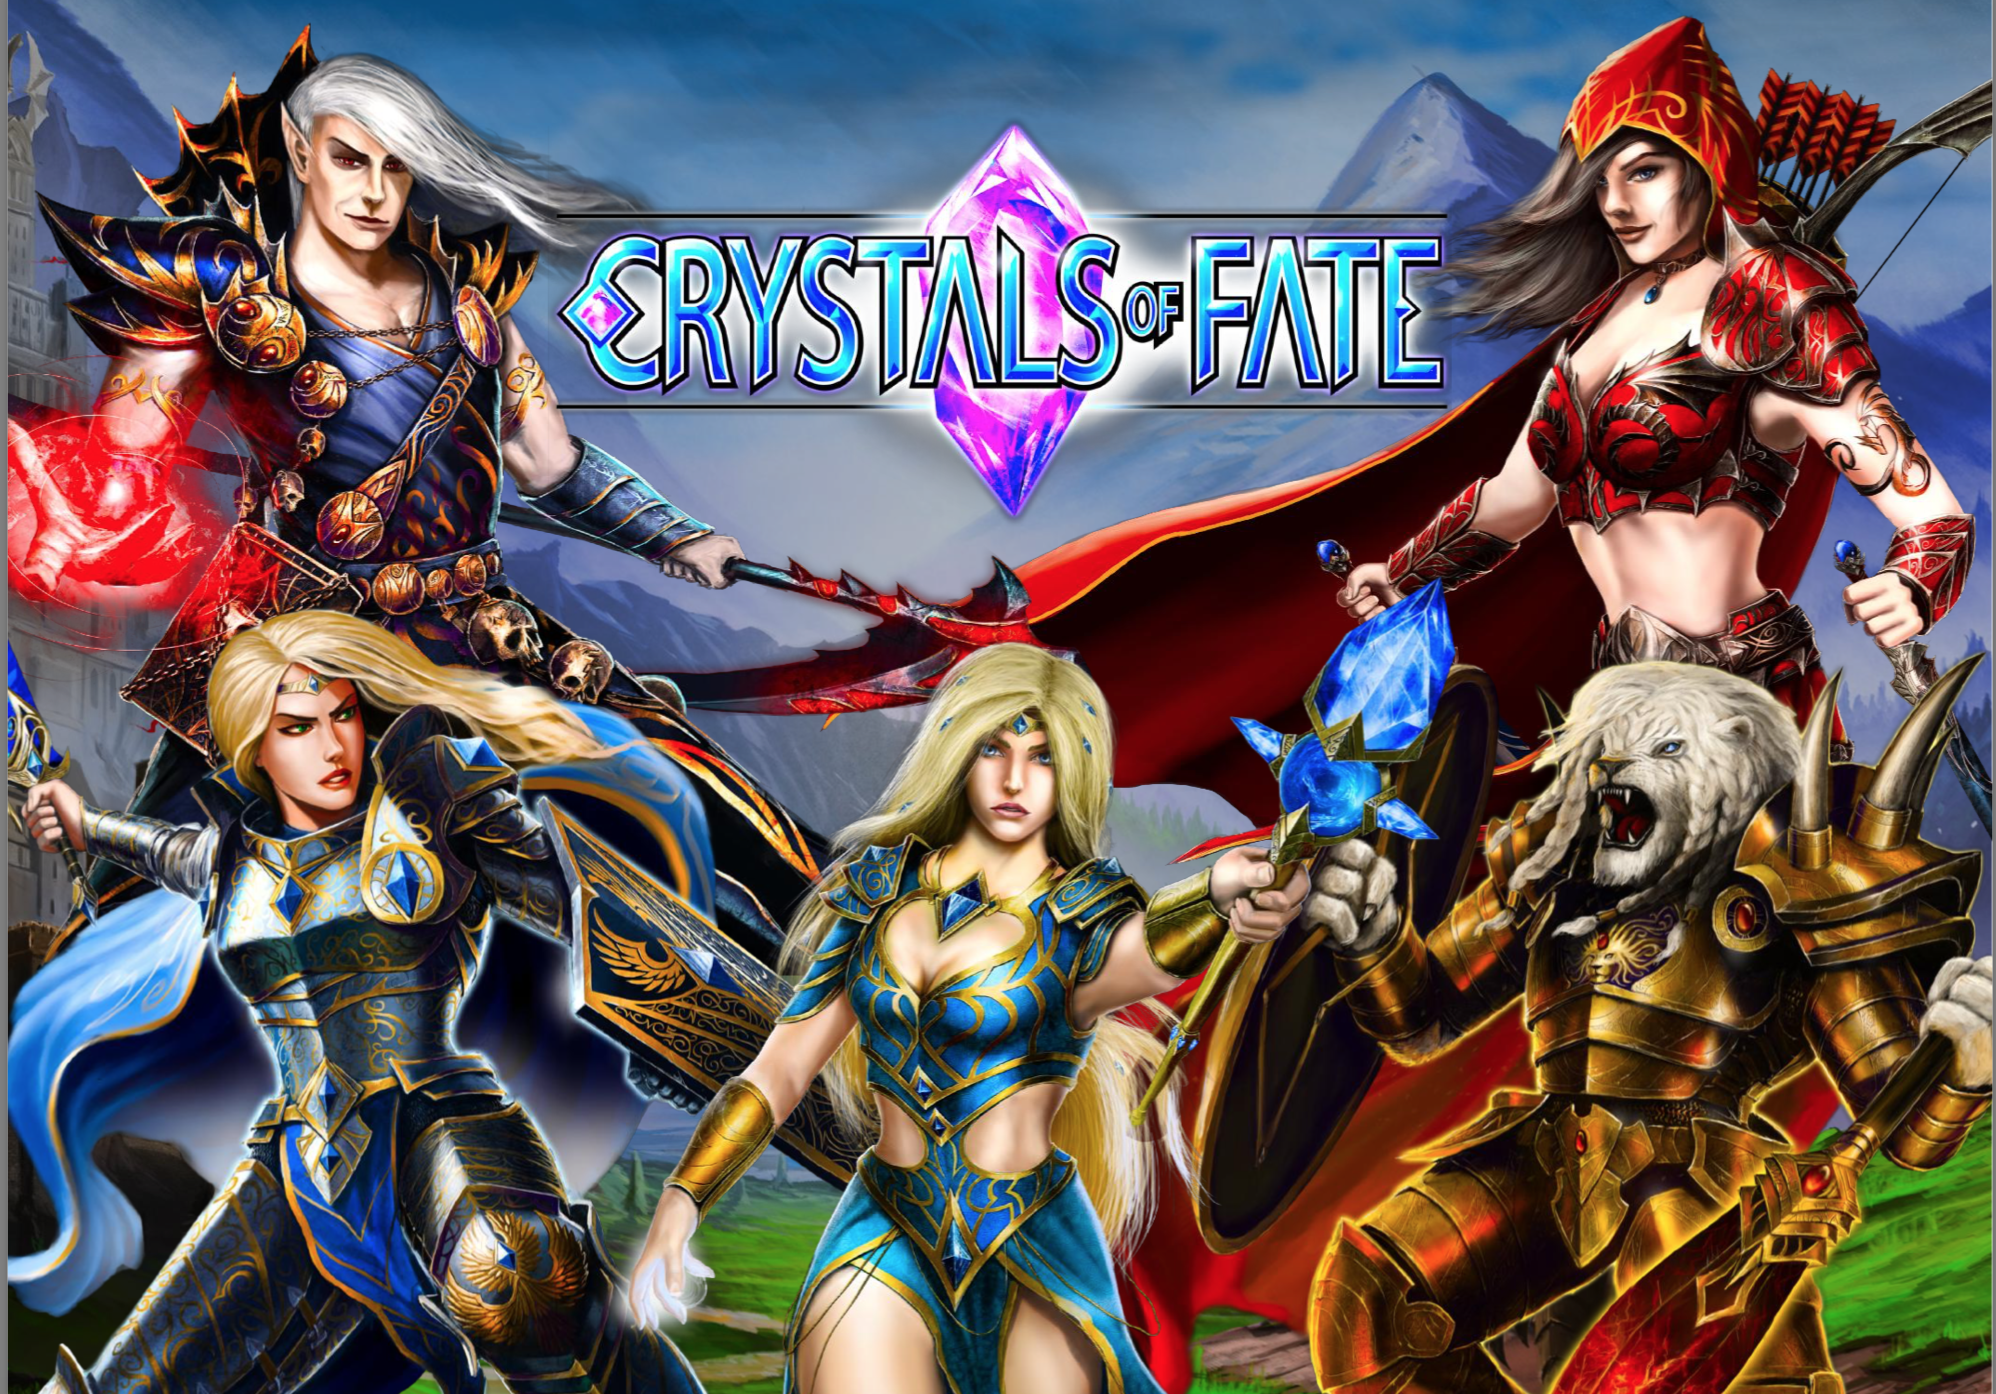 Crystals of Fate